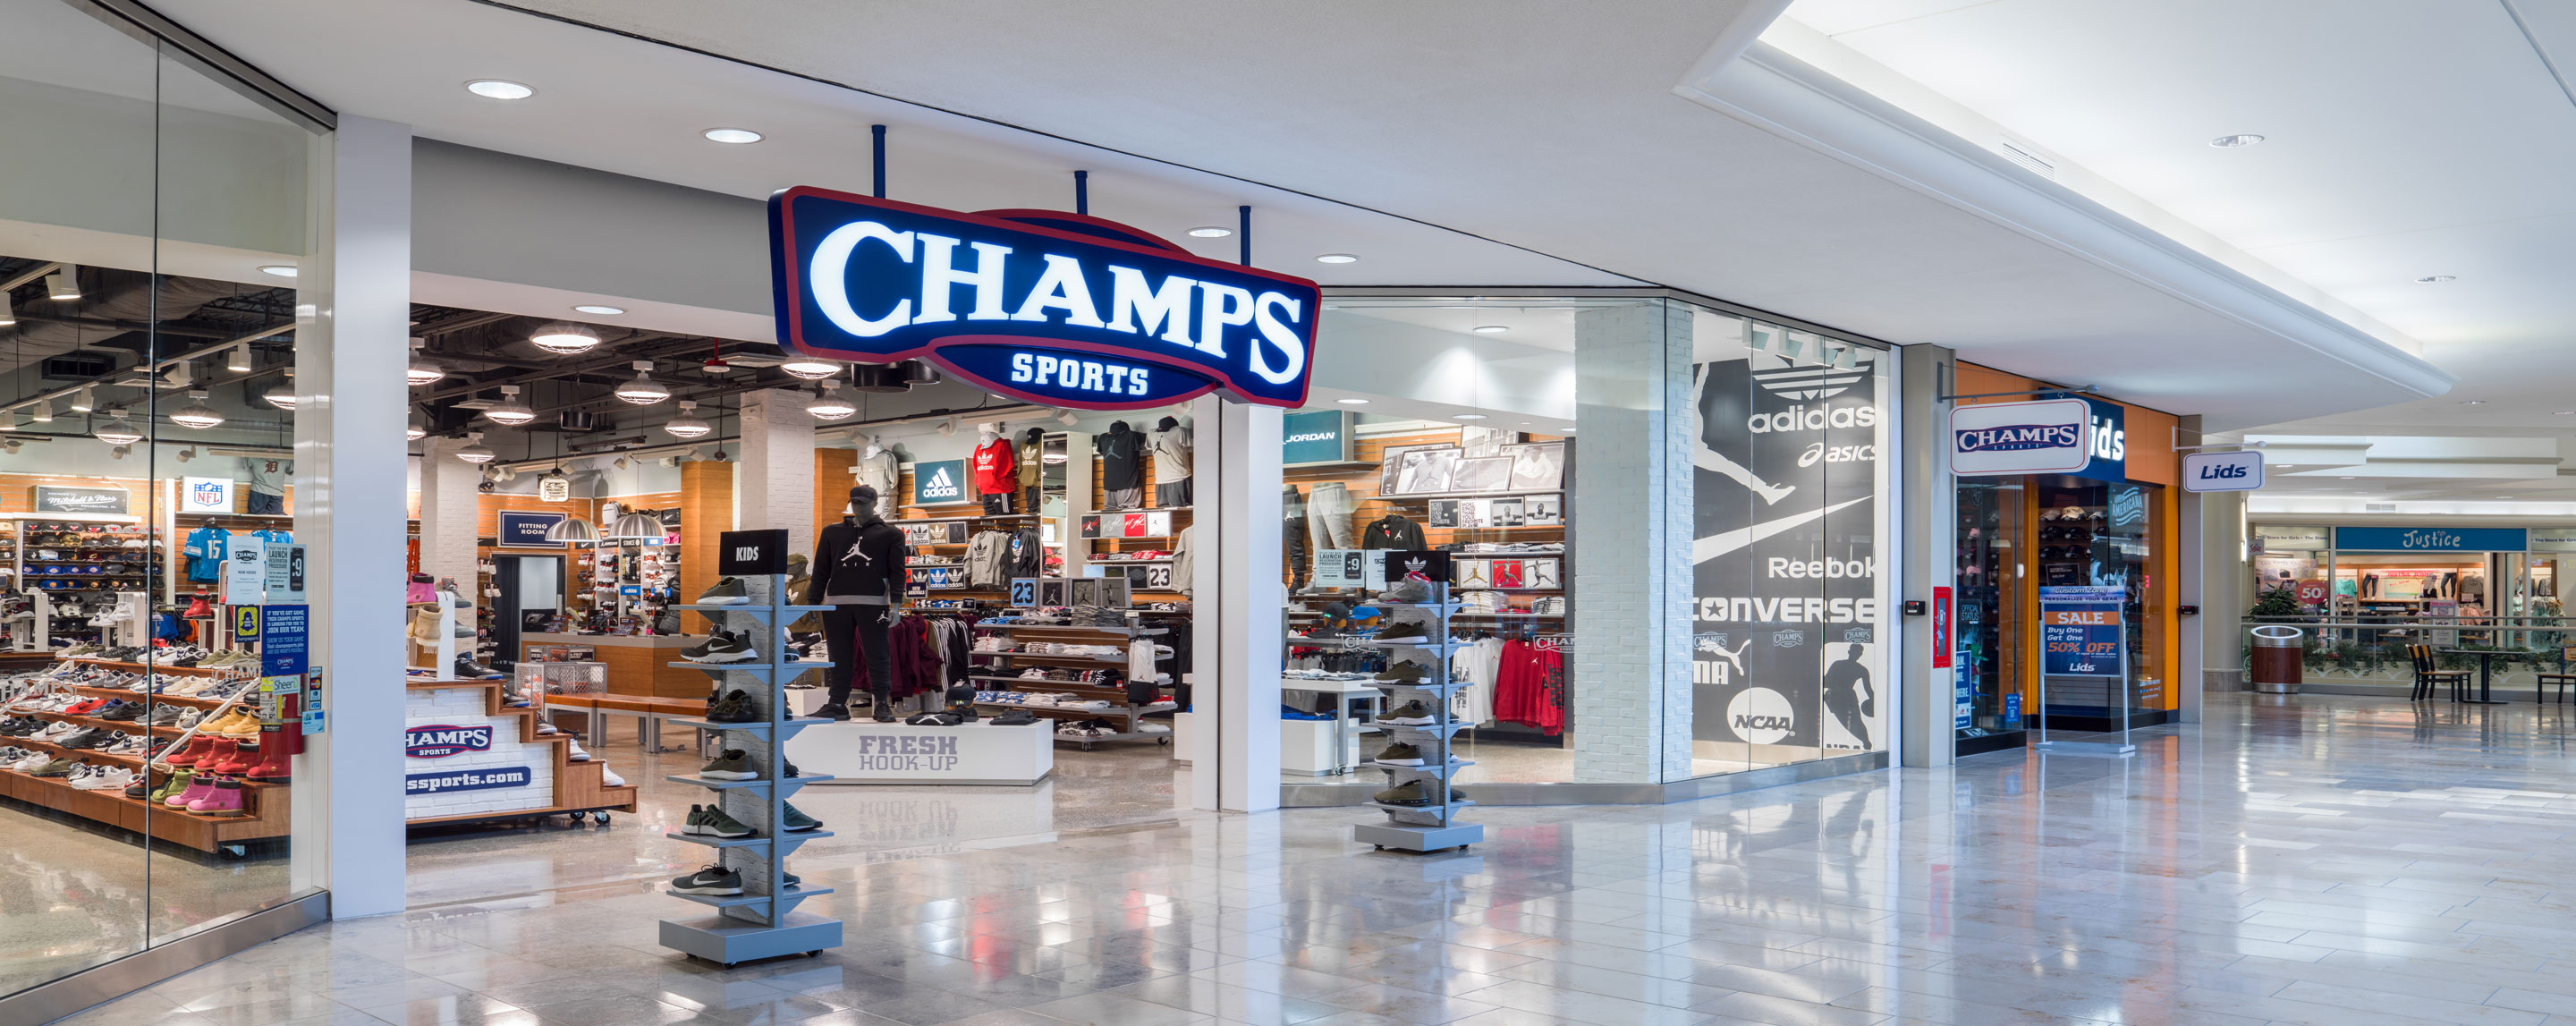 Champs and Lids at The Crossroads